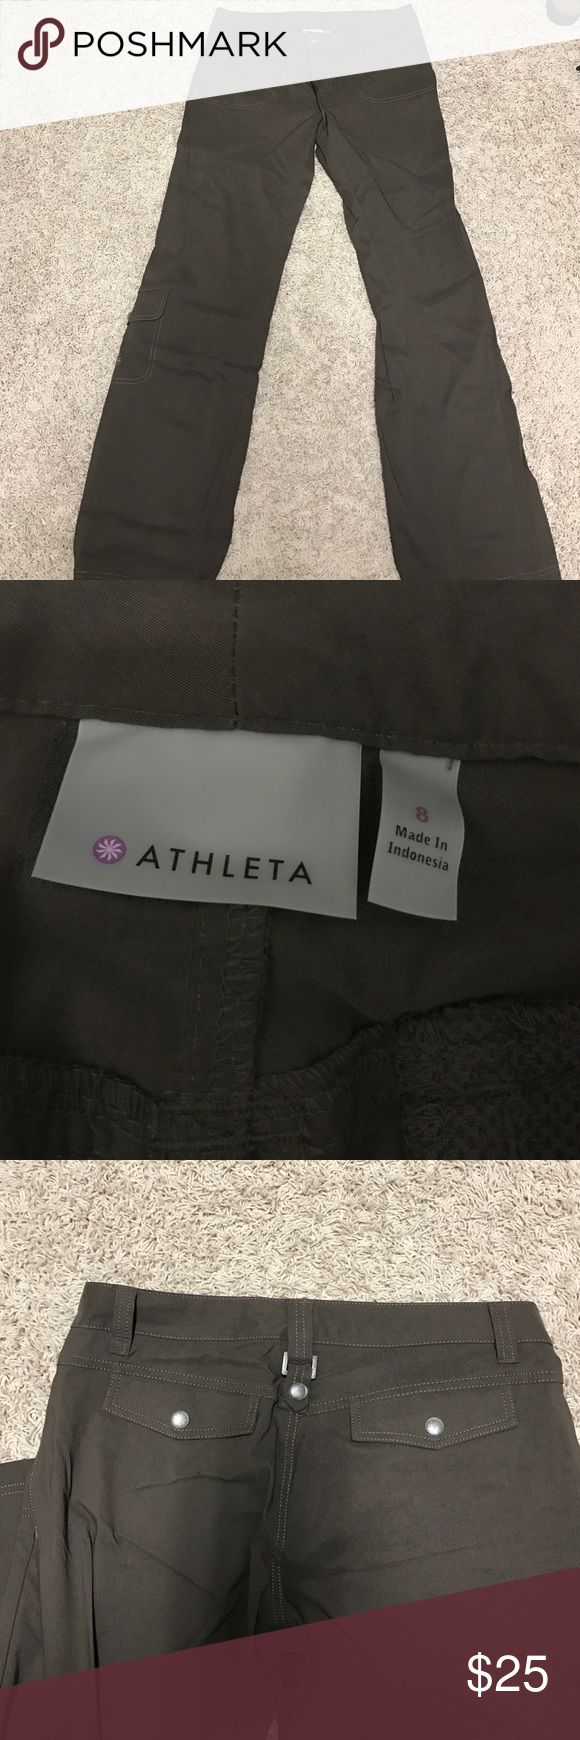 ATHLETA brown nylon/spandex pants BRAND NEW!! (Without tags) brown hiking type pants. Size 8. Never worn! Nylon and spandex! Athleta Pants Straight Leg